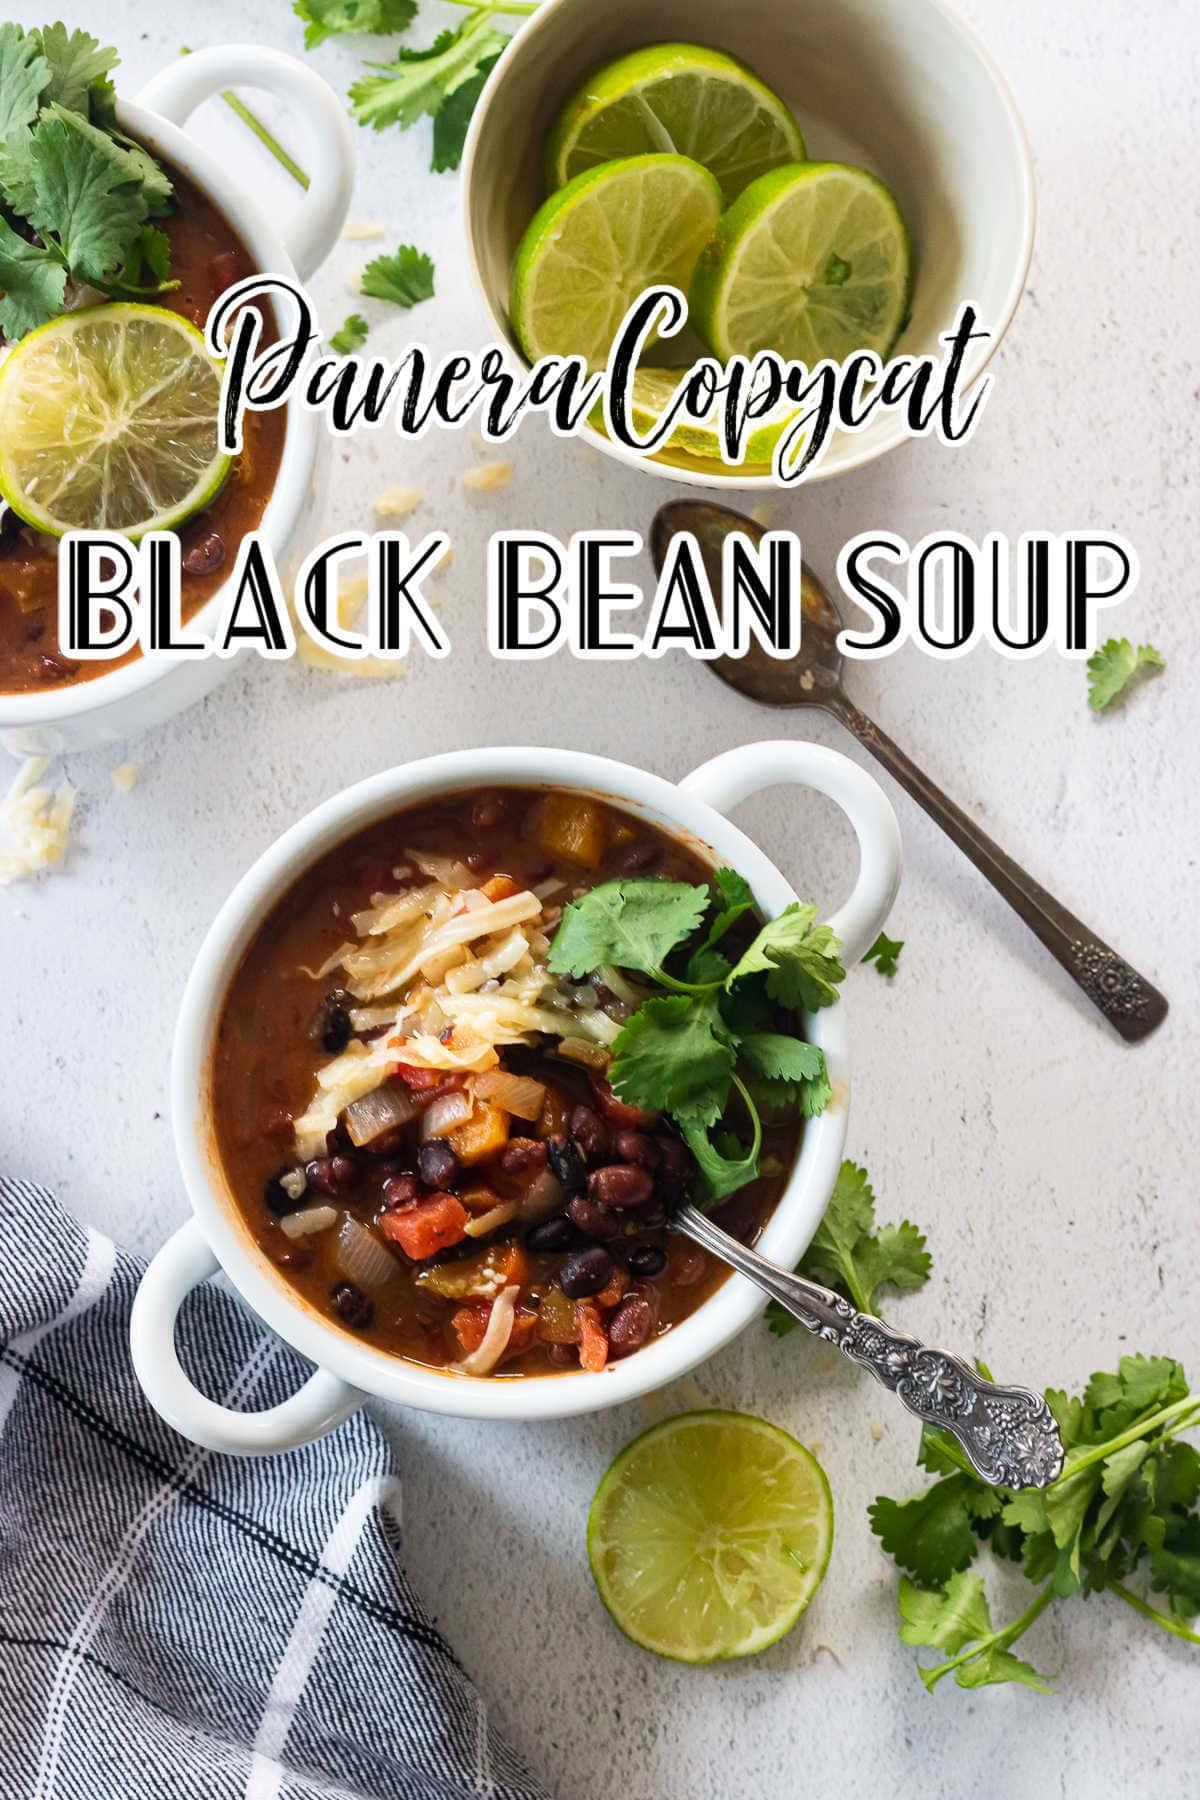 A bowl of black bean soup with title text overlay.